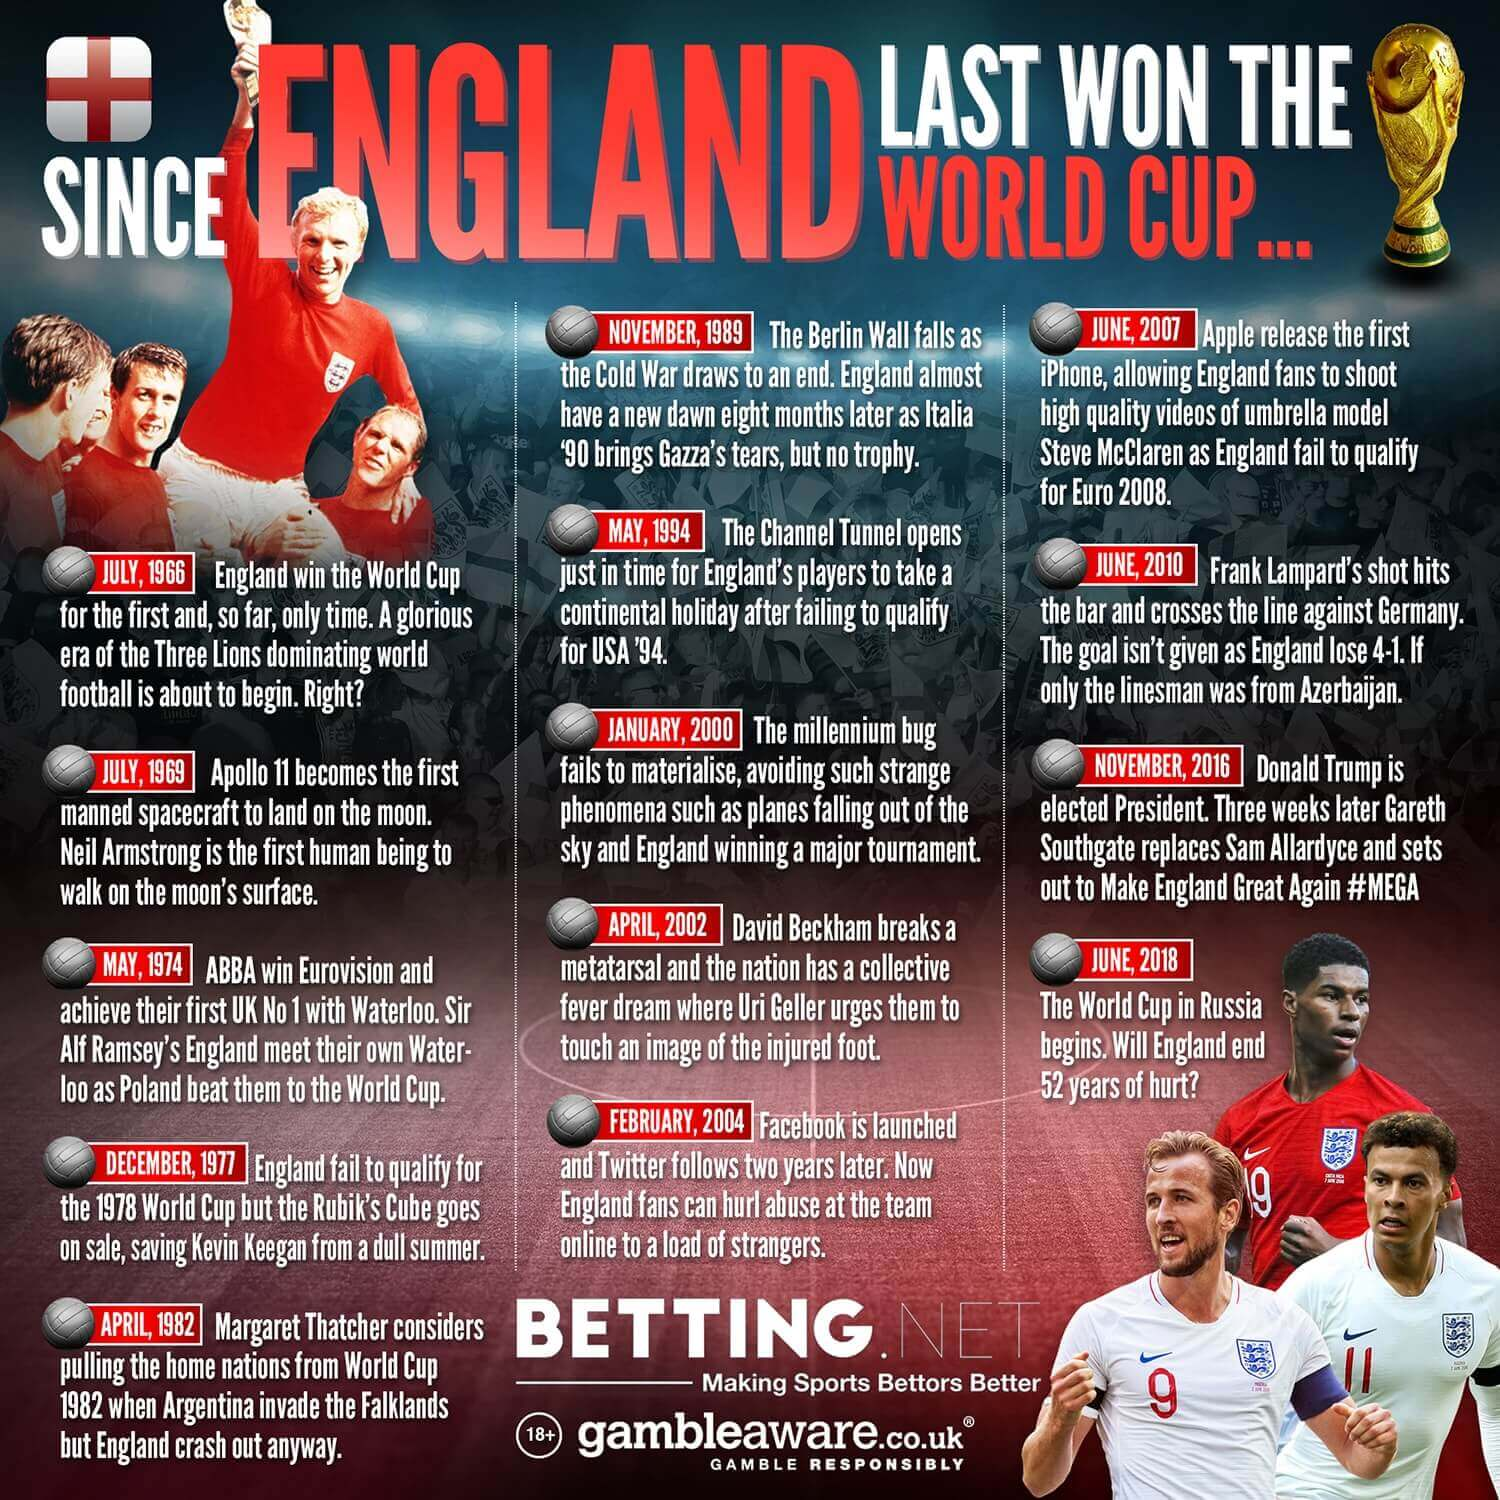 Things that have happened since England last won the World Cup infographic